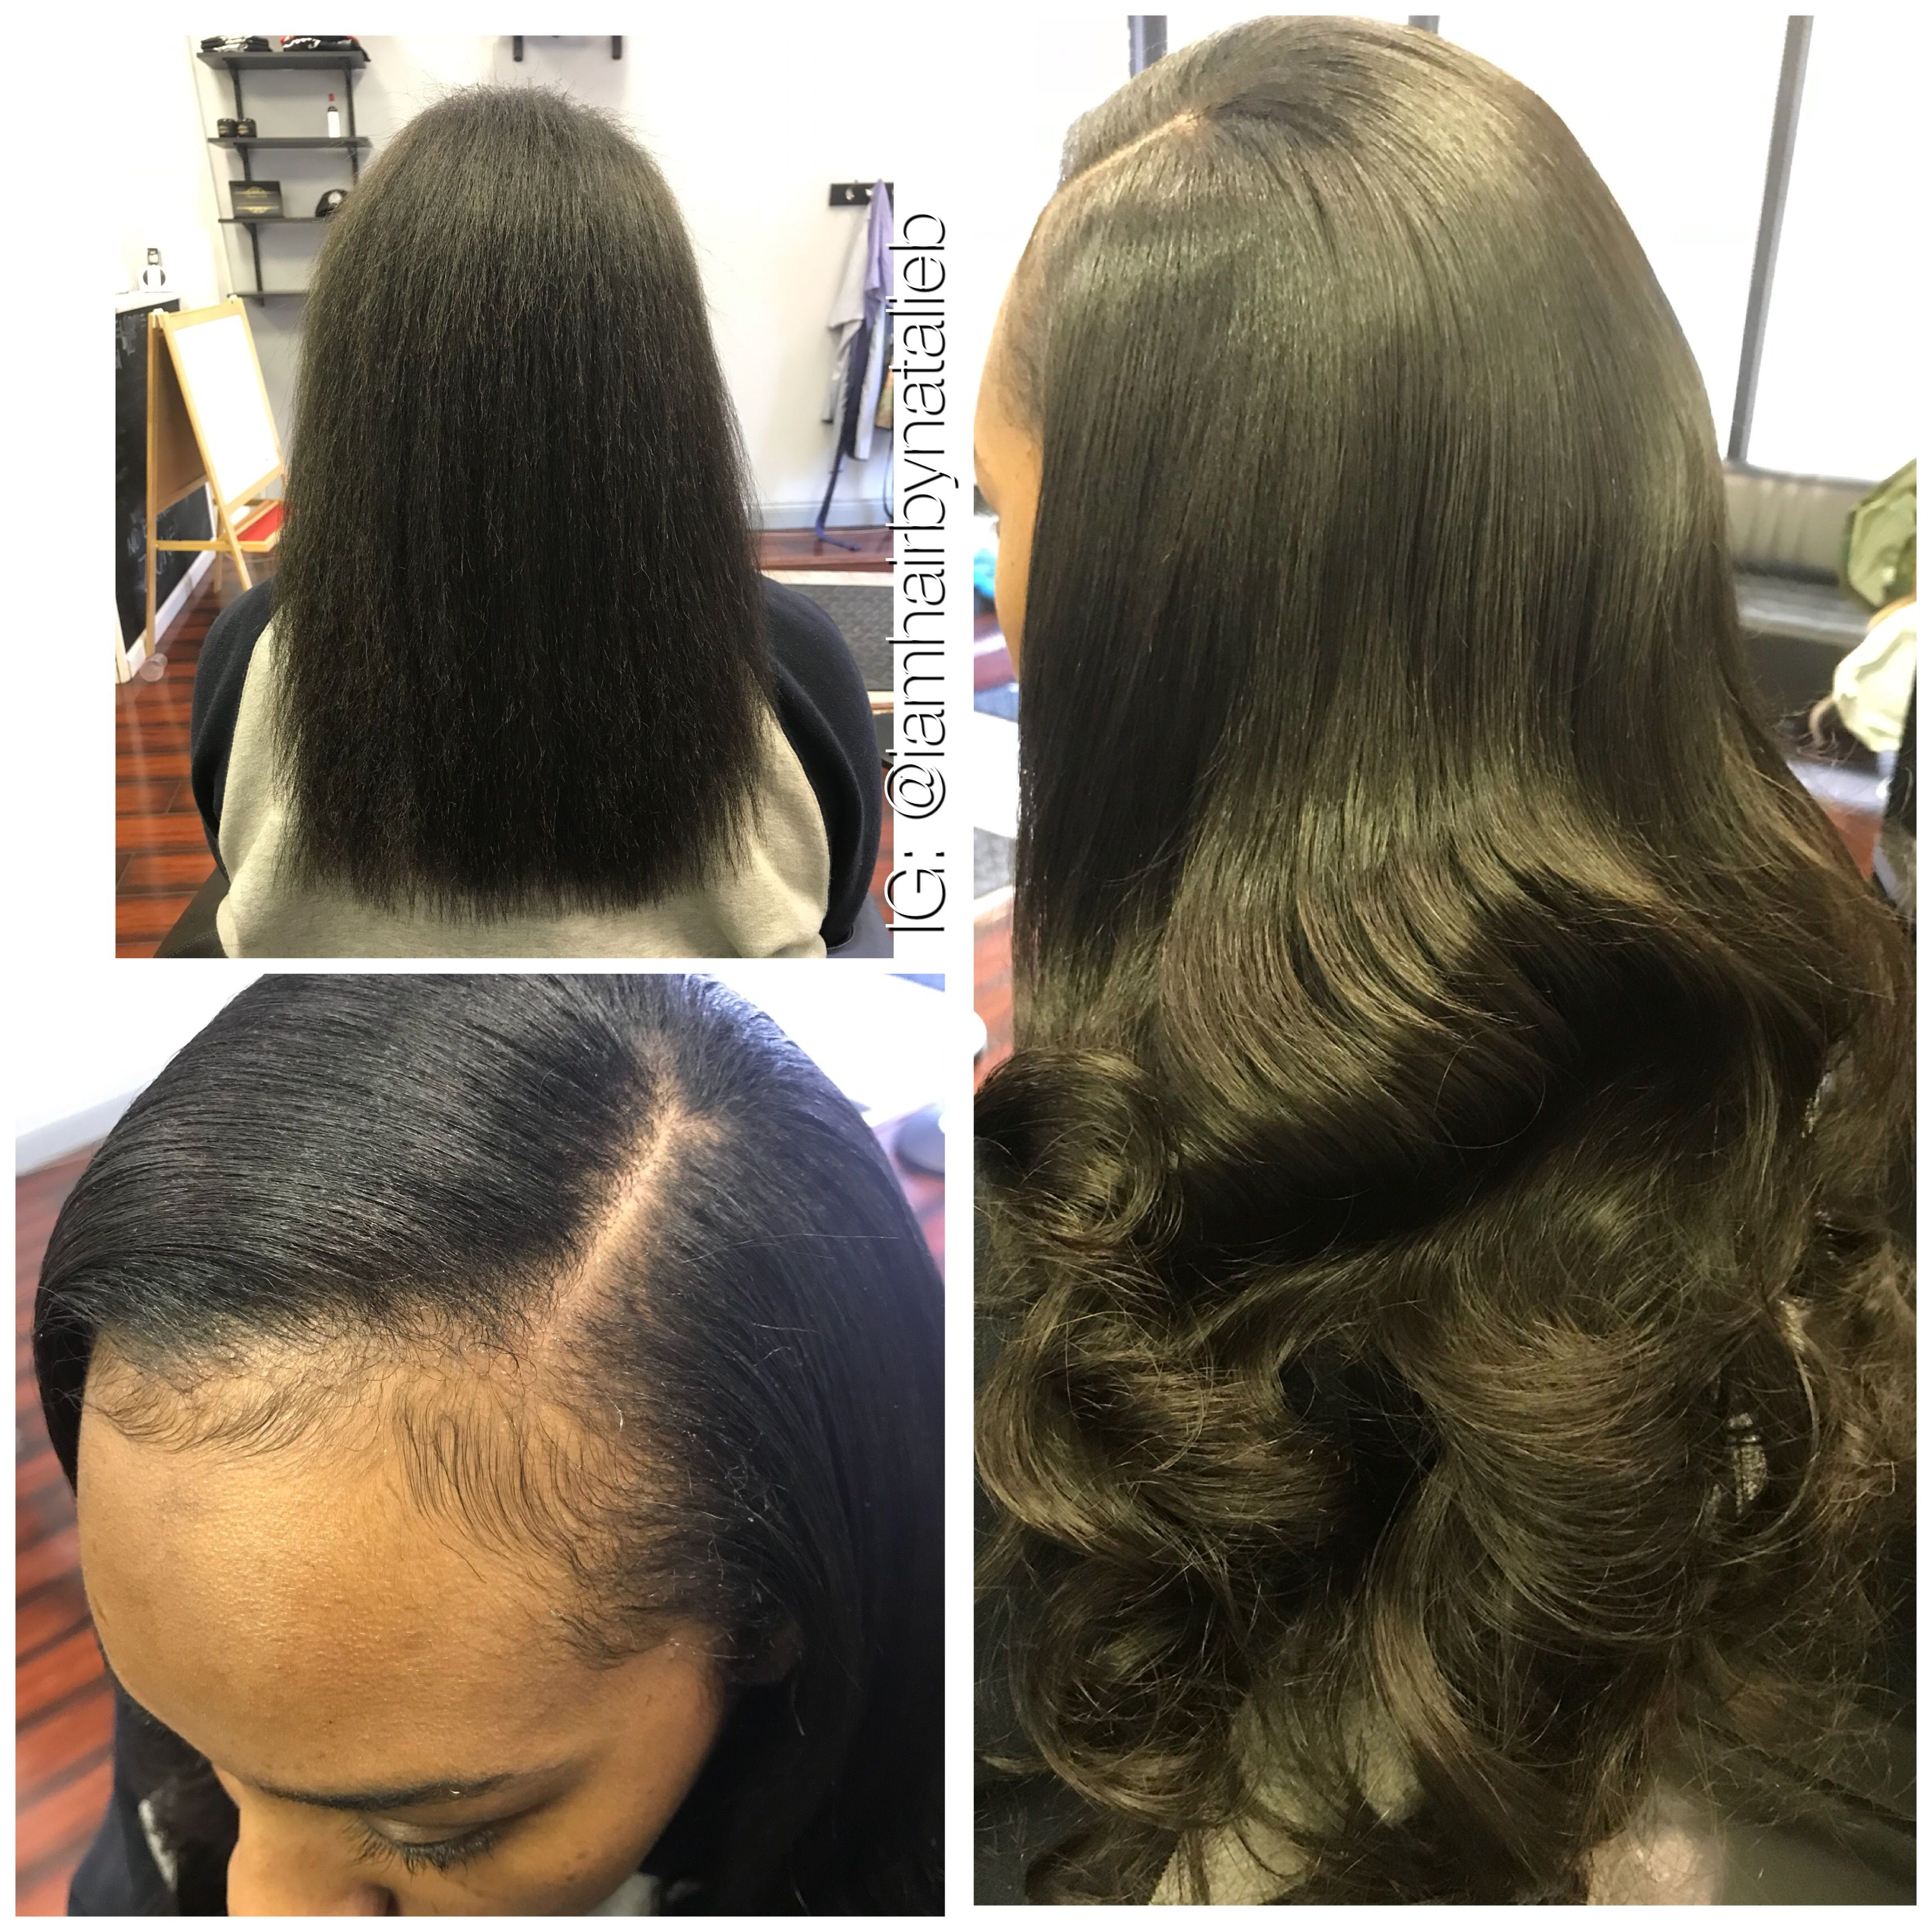 Your Sew In Hair Weave Should Be Flat And Natural Lookingd